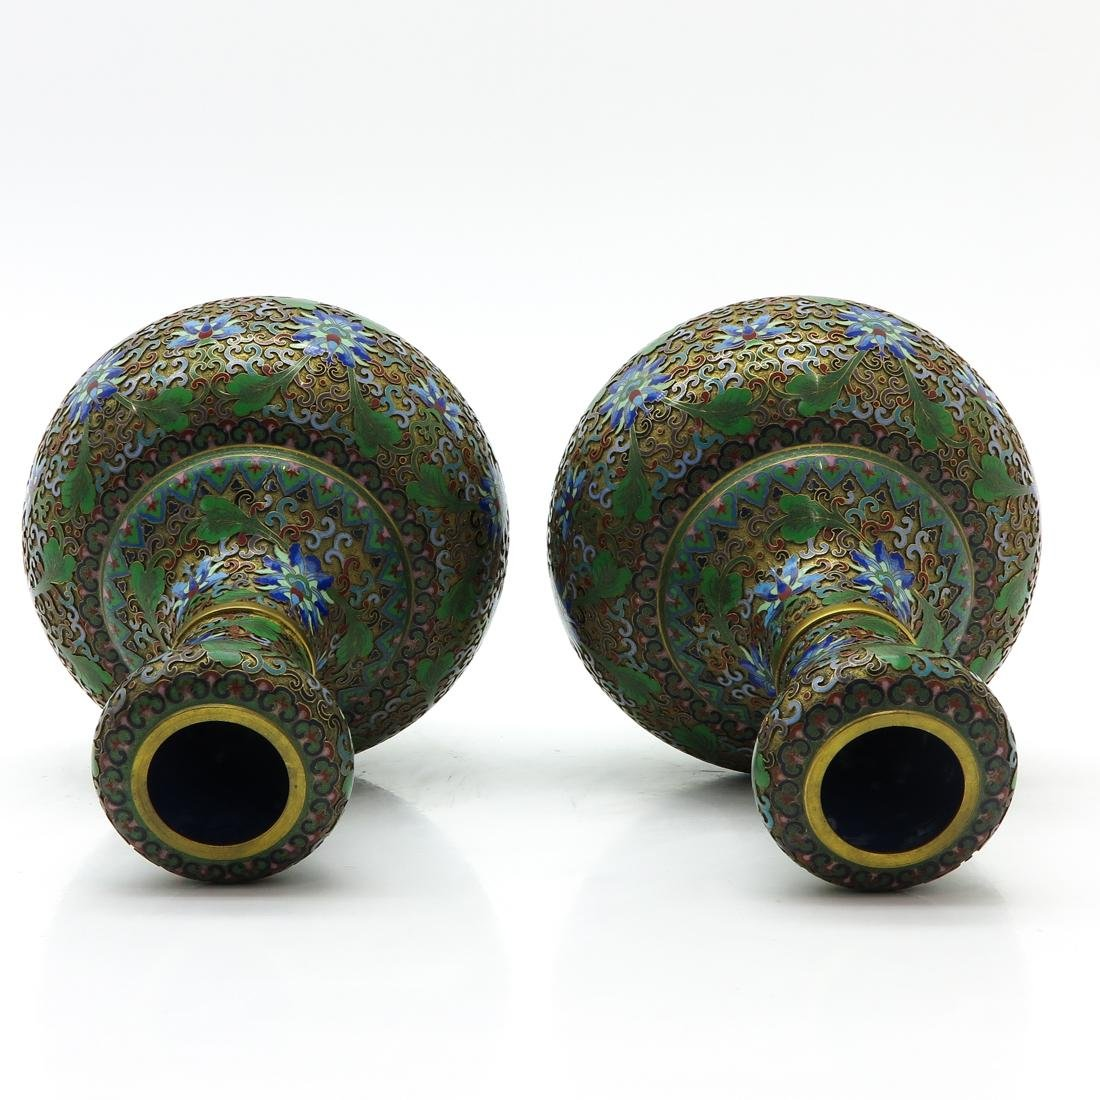 Pair of Cloisonne Vases - 5